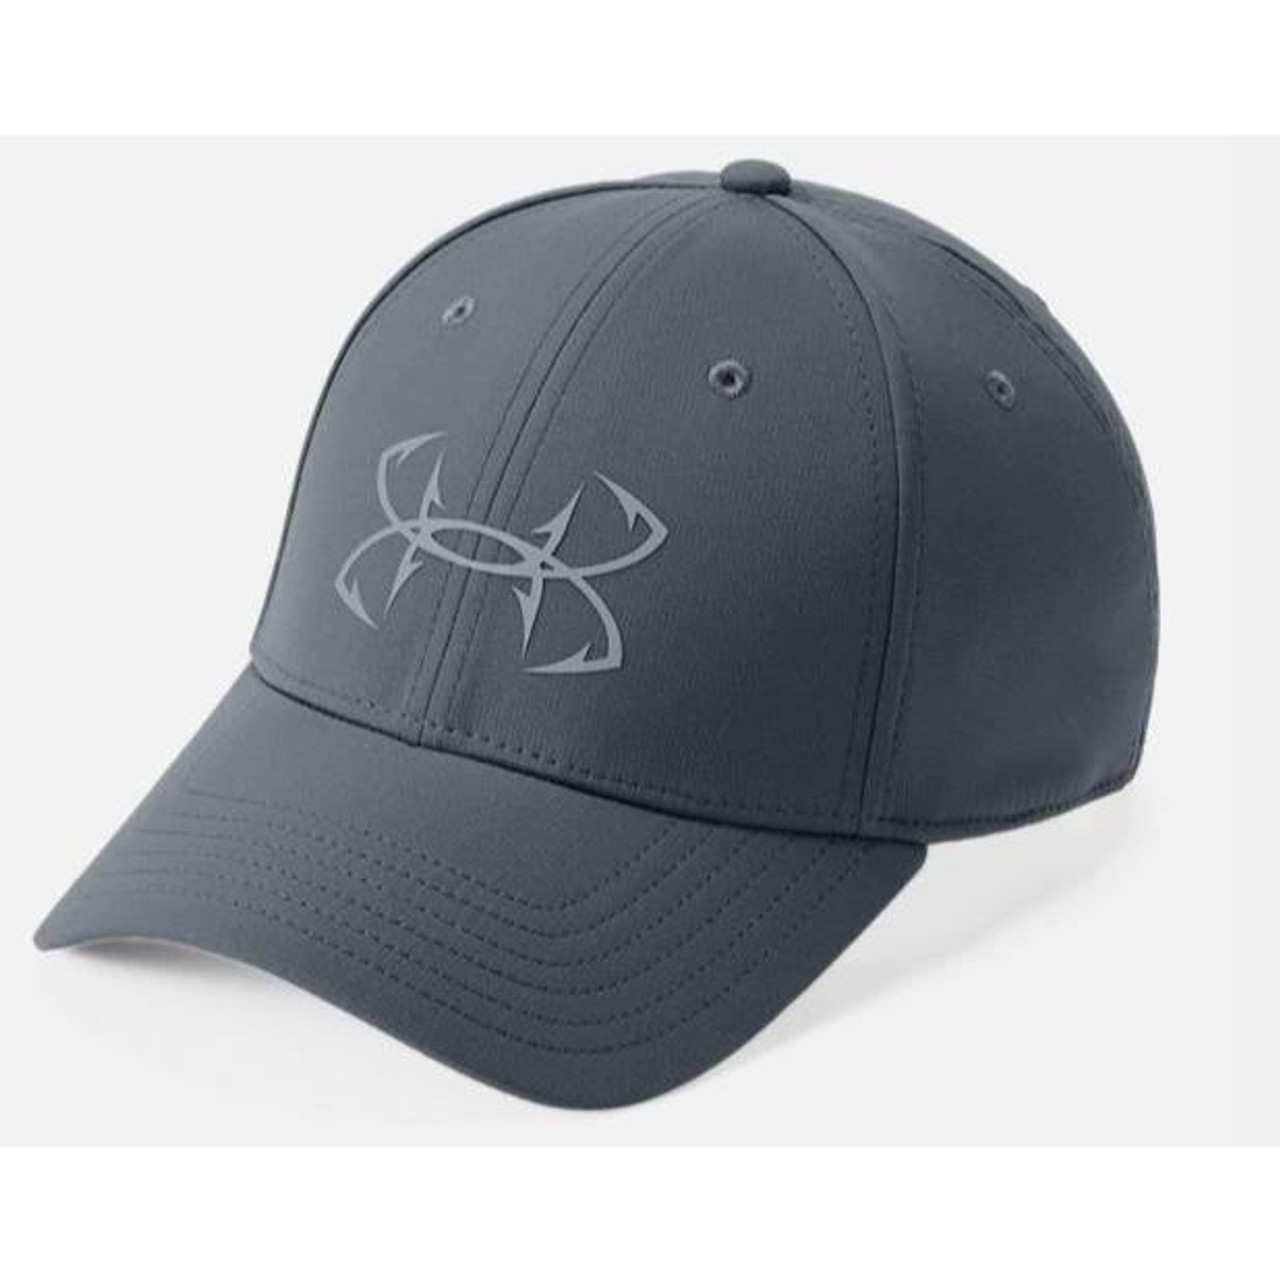 Under Armour Storm Headline Hunt Cap  1300470 - 191169581353. COLOR   Required 458bf0b17a3